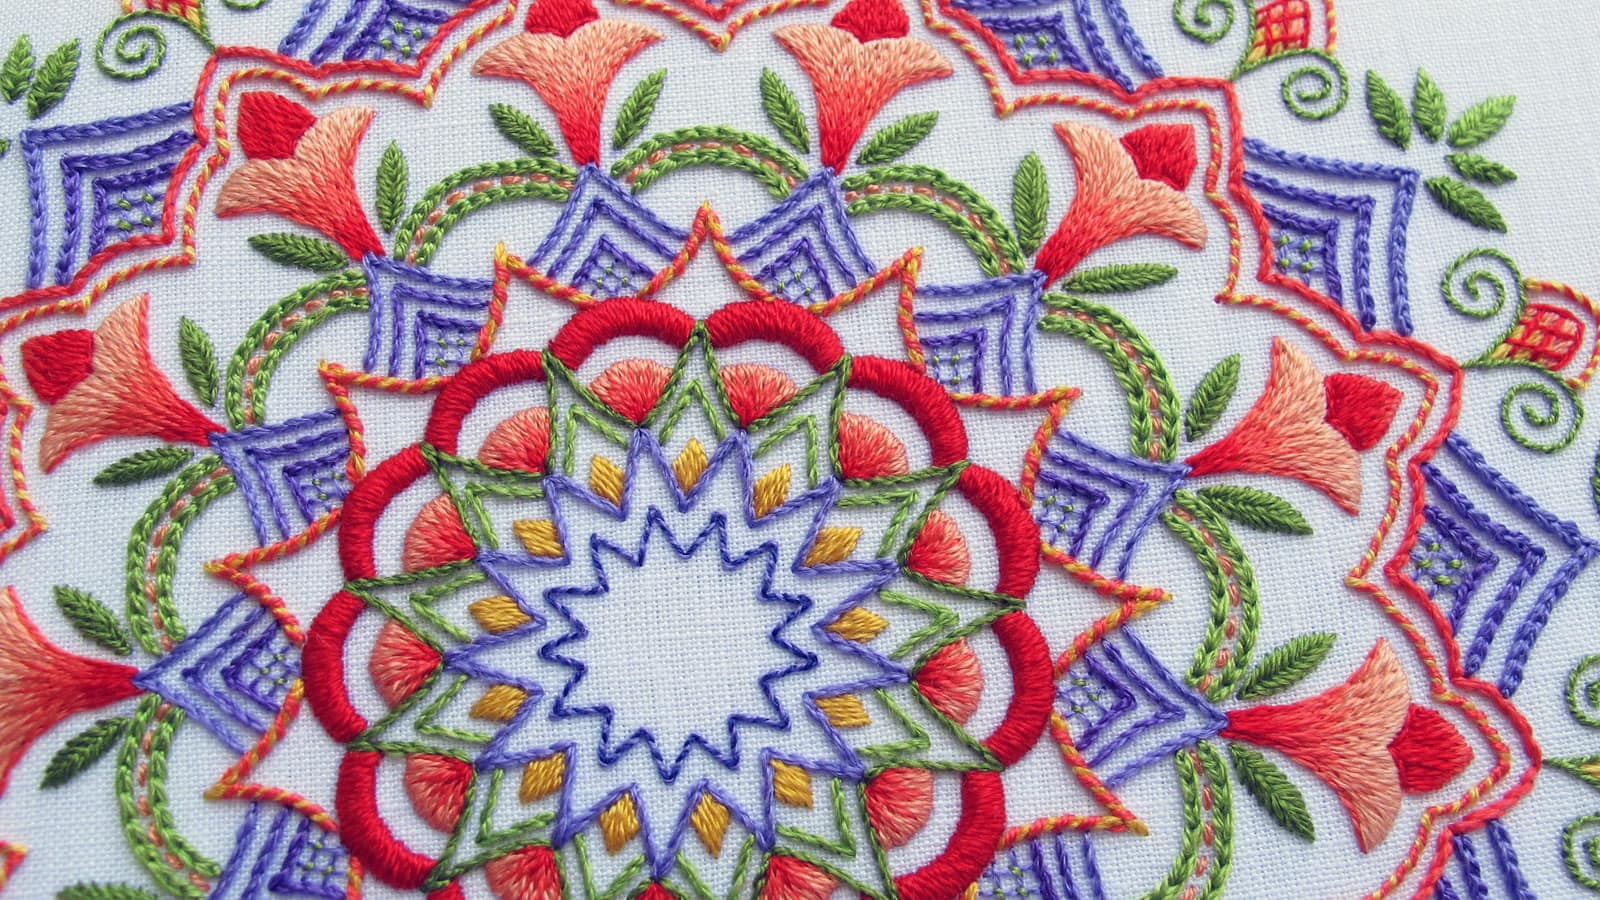 Embroidery For Beginners Free Patterns Needlenthread Tips Tricks And Great Resources For Hand Embroidery